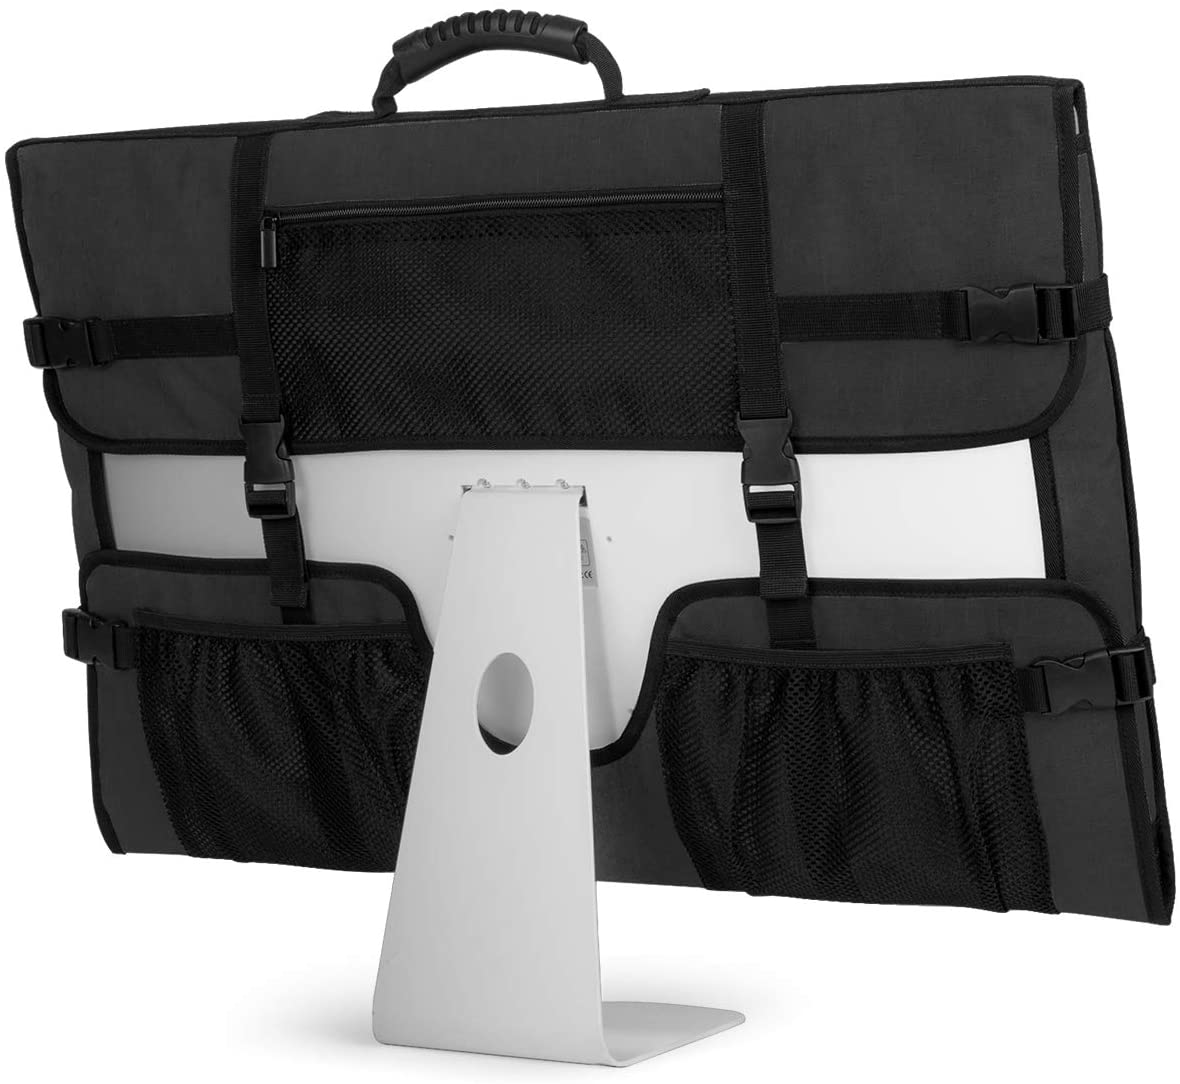 "CURMIO Travel Carrying Bag for Apple 21.5"" iMac Desktop Computer, Protective Storage Case Monitor Dust Cover with Rubber Handle for 21.5"" iMac Screen and Accessories, Black, Patent Design."